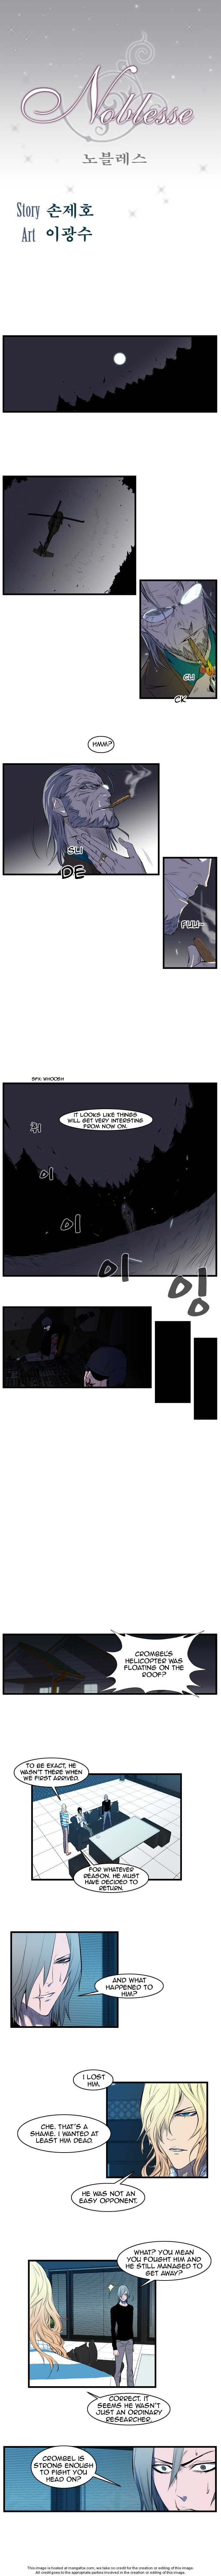 Noblesse 91 Page 1